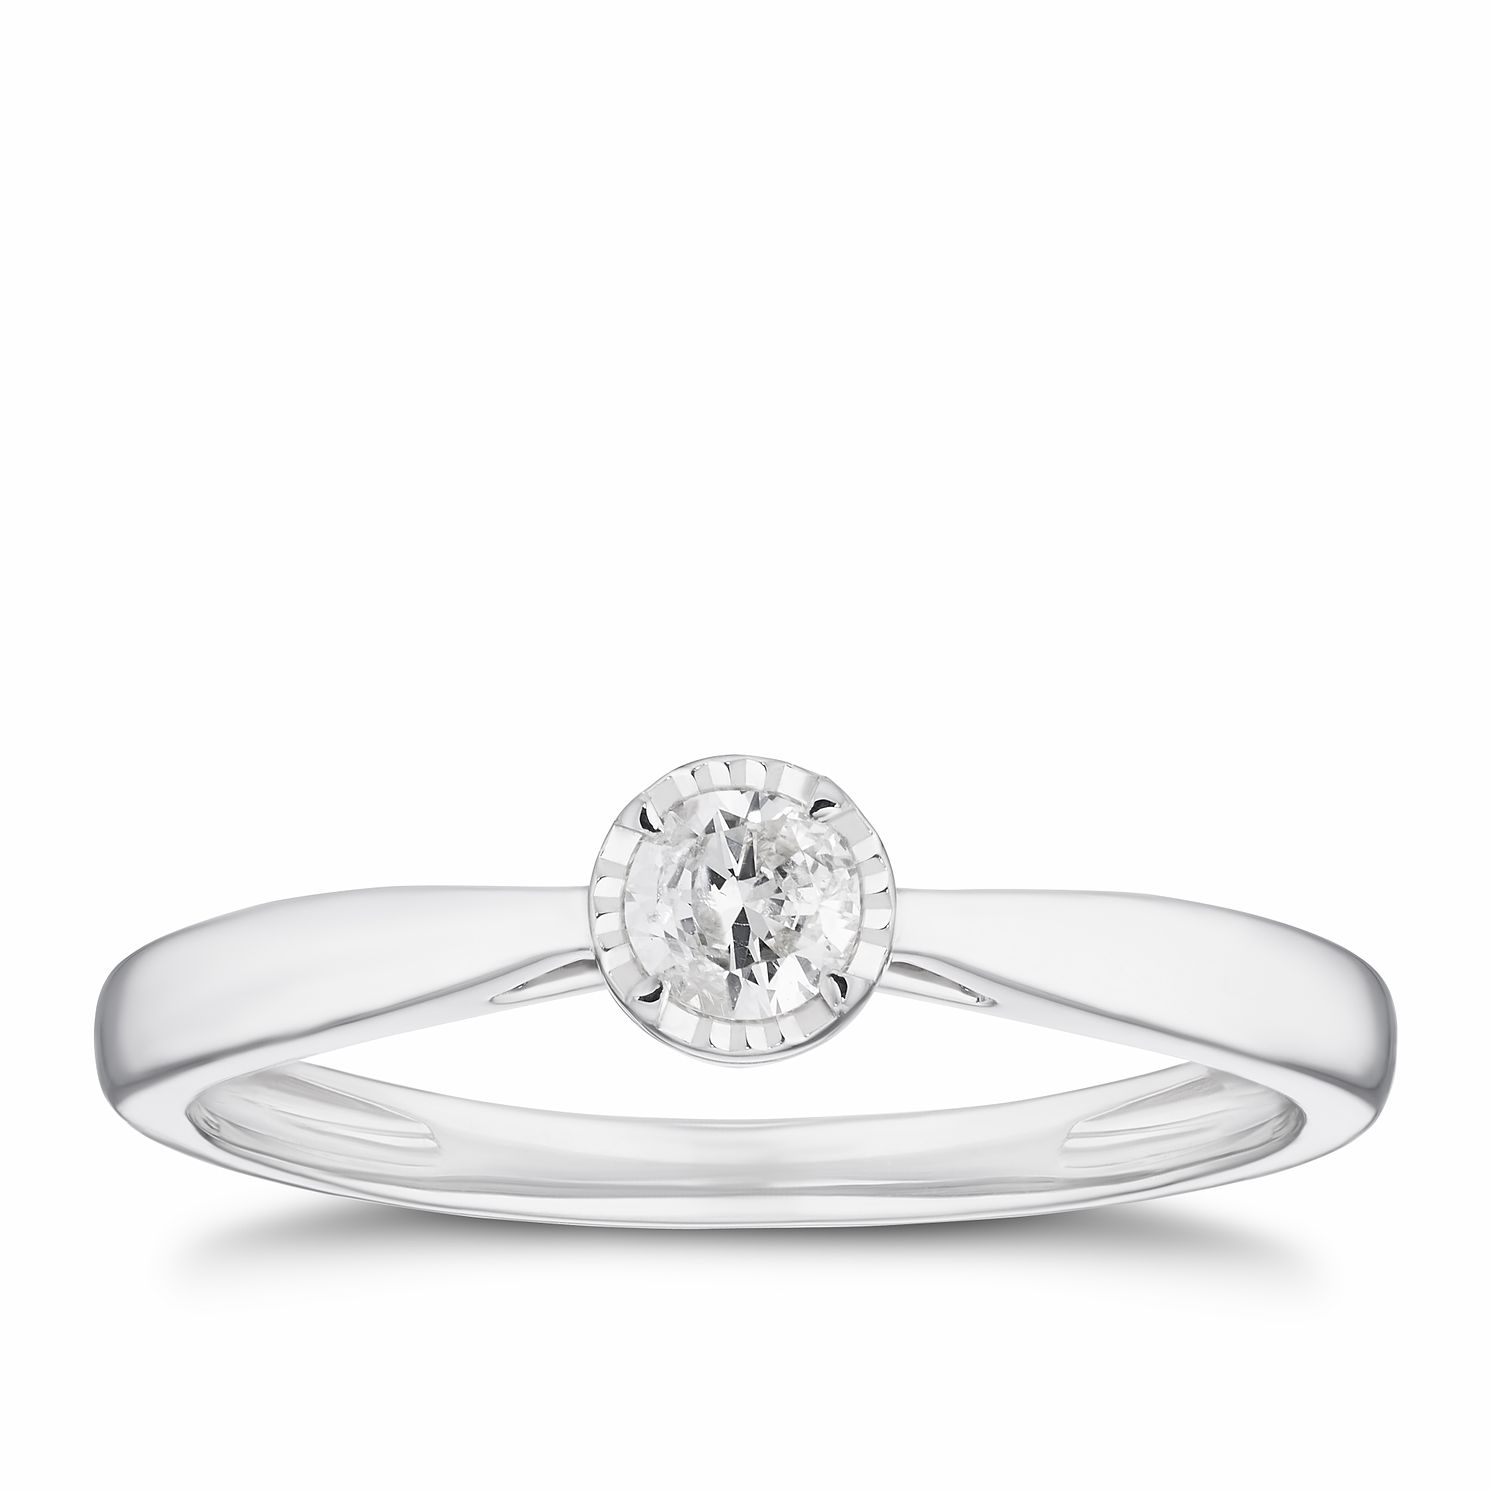 9ct White Gold 0.15ct Illusion Set Diamond Solitaire Ring - Product number 3311791